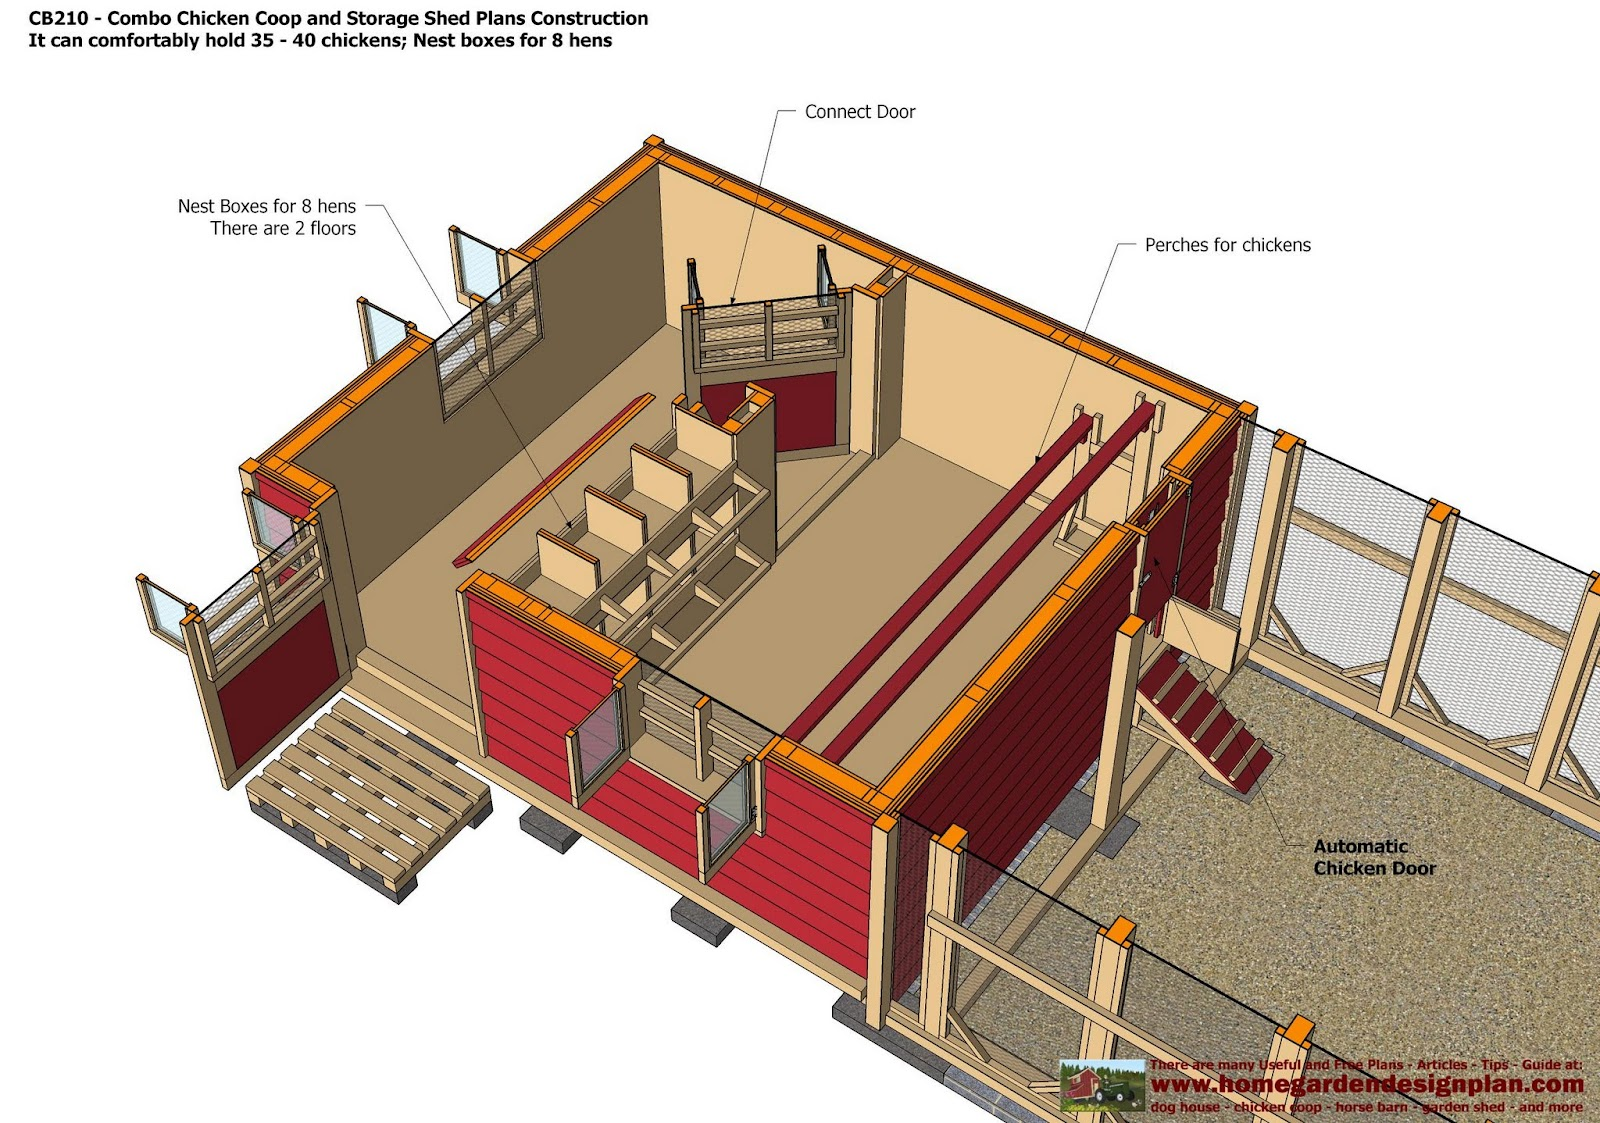 Home garden plans cb210 combo plans chicken coop for Plans for chicken coops